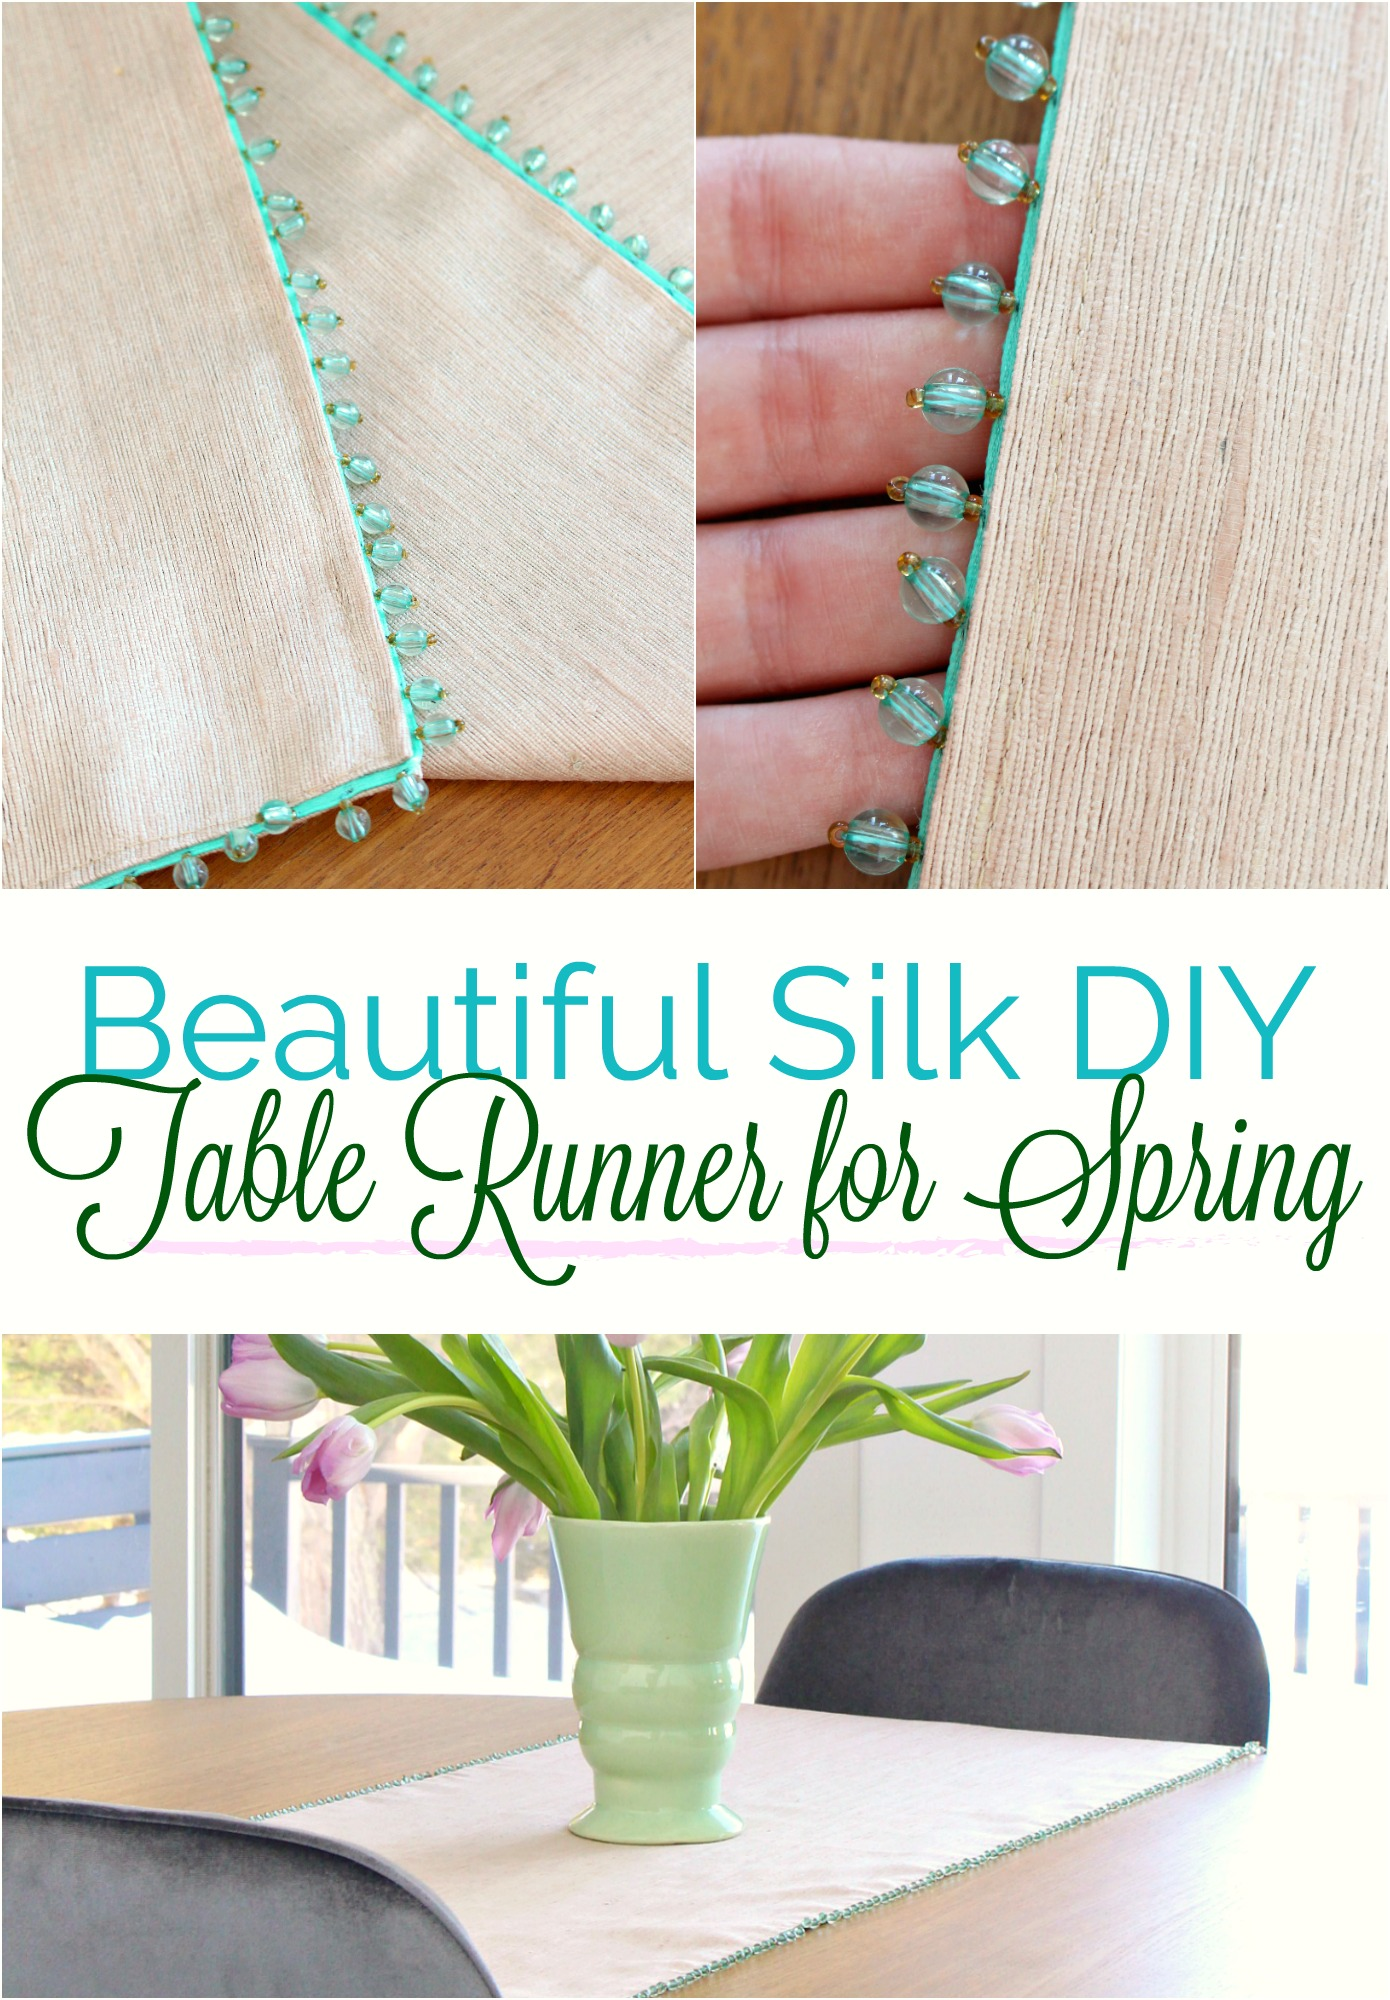 Learn how to sew this beautiful DIY spring table runner with tips on how to baste and sew glass bead trim. Such a sweet sewing project idea! #springdecor #sewing #tablerunner #diysewing